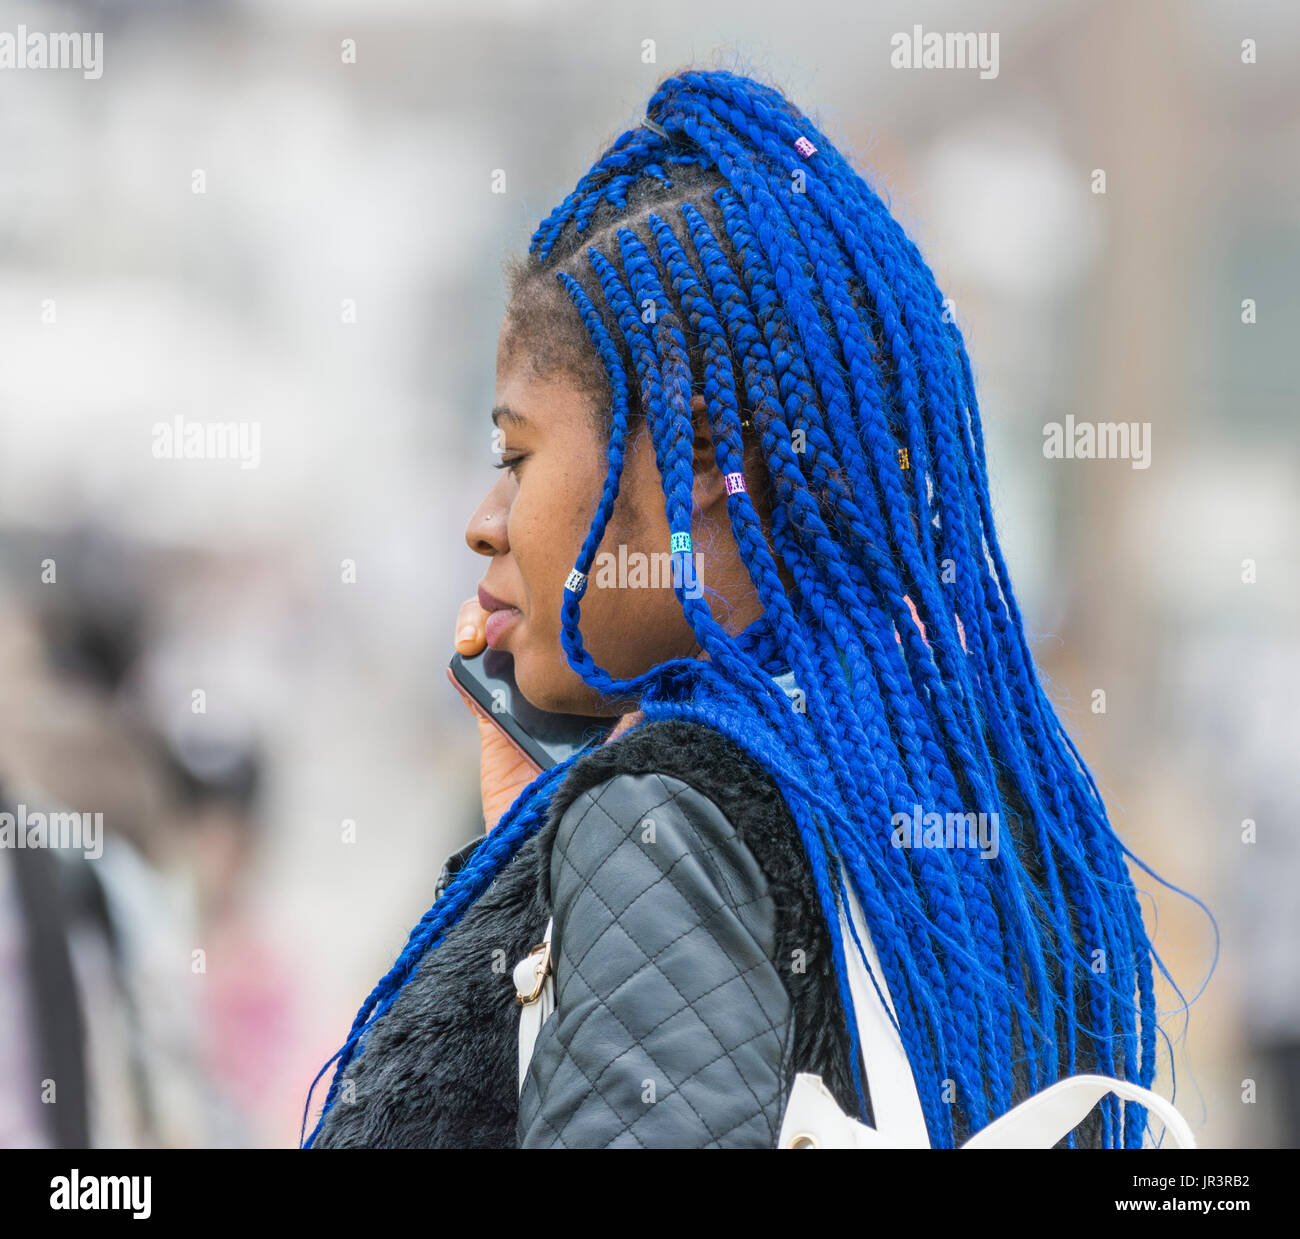 young-black-woman-with-braided-blue-hair-JR3RB2.jpg